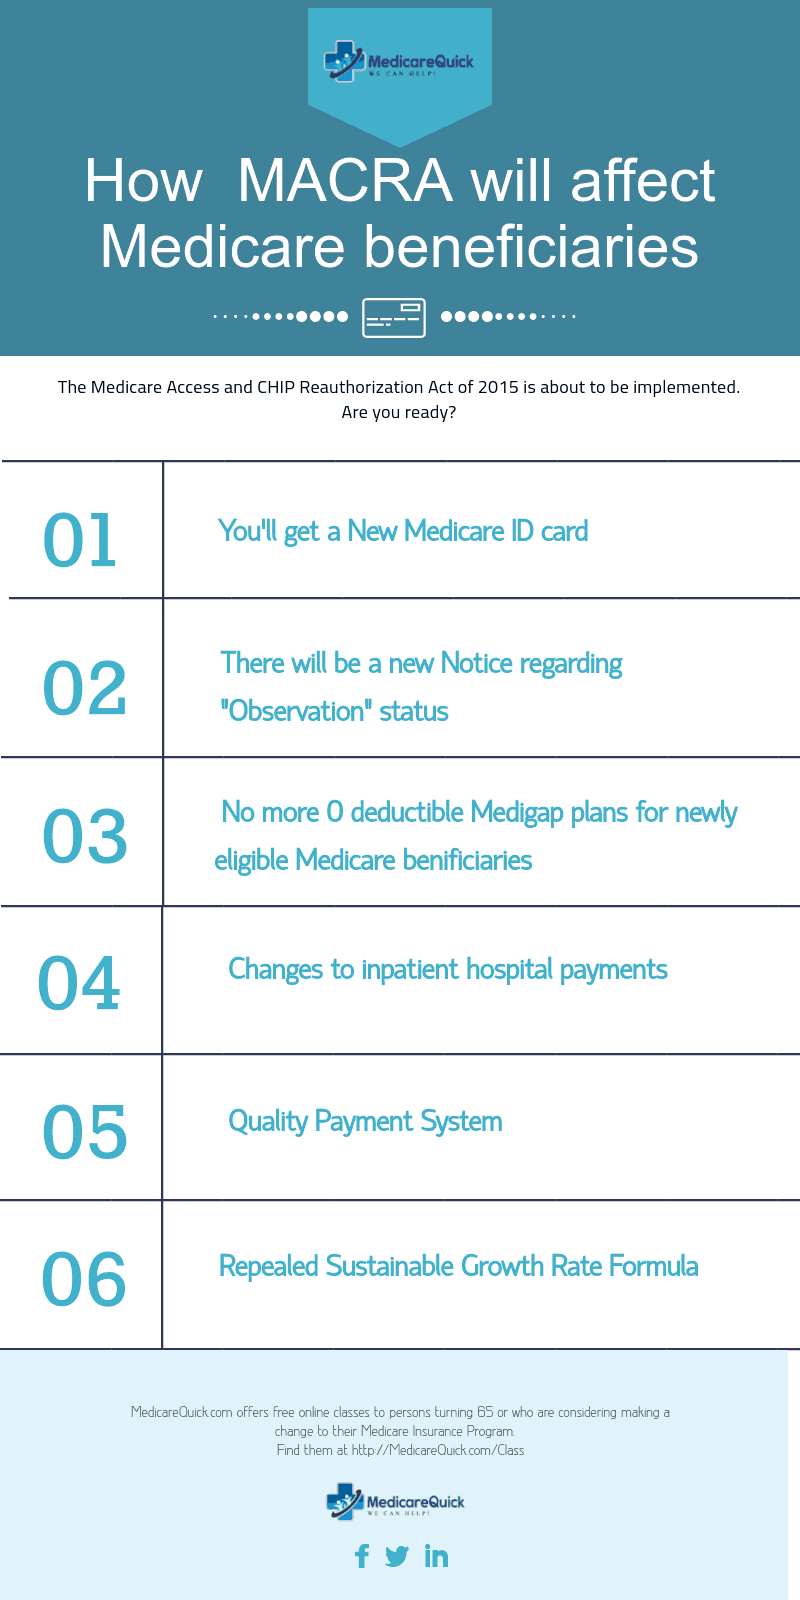 Infographic of how MACRA will affect Medicare beneficiaries